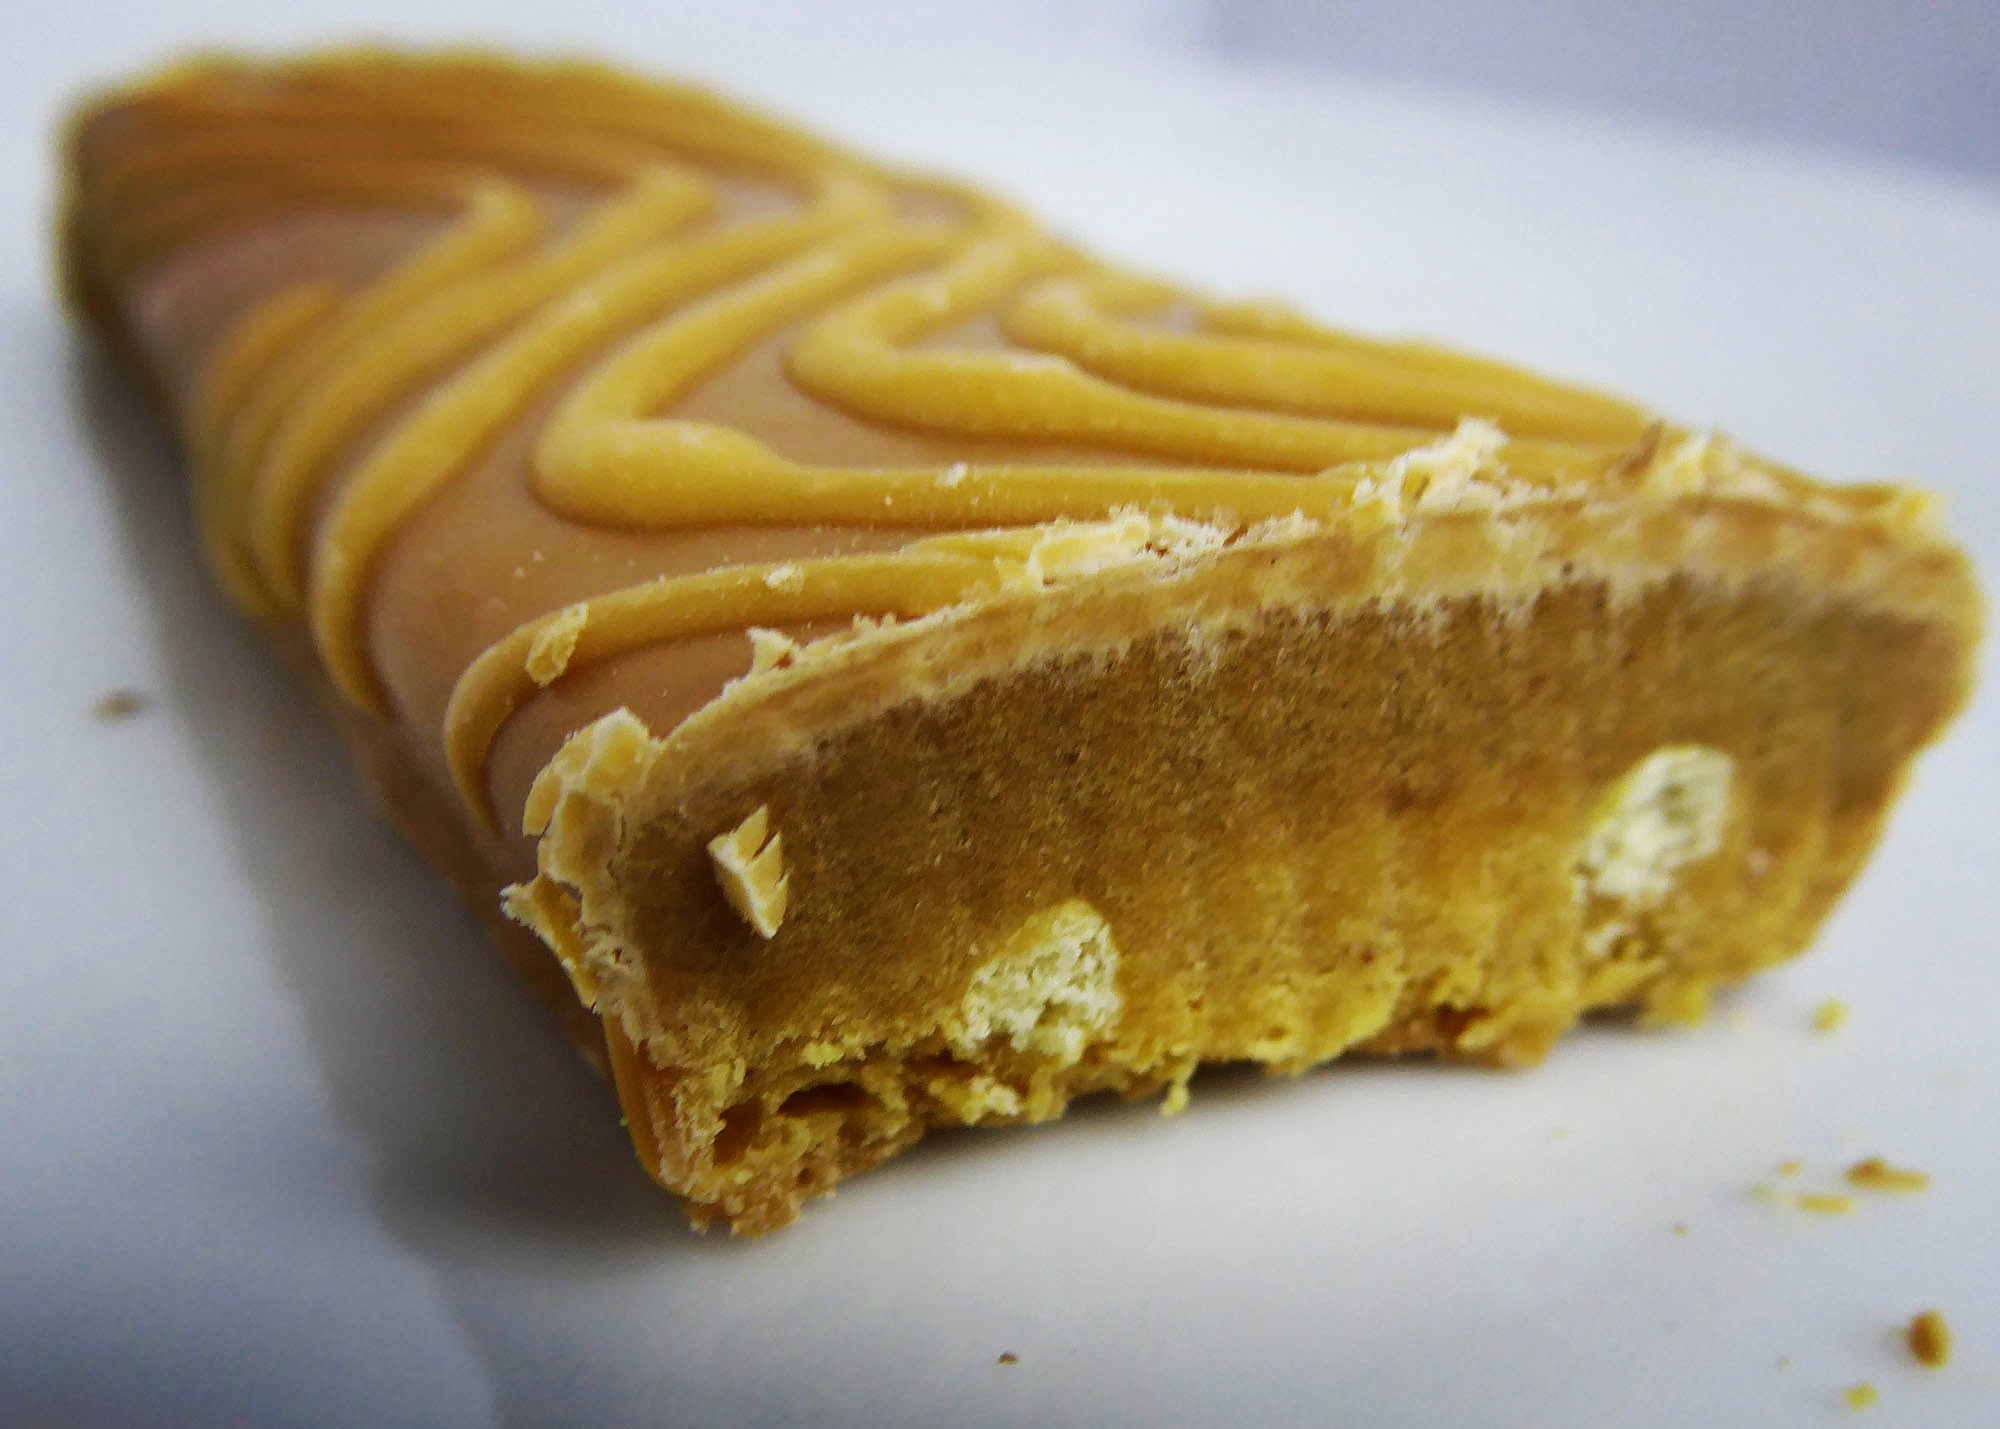 One Salted Caramel Protein Bar